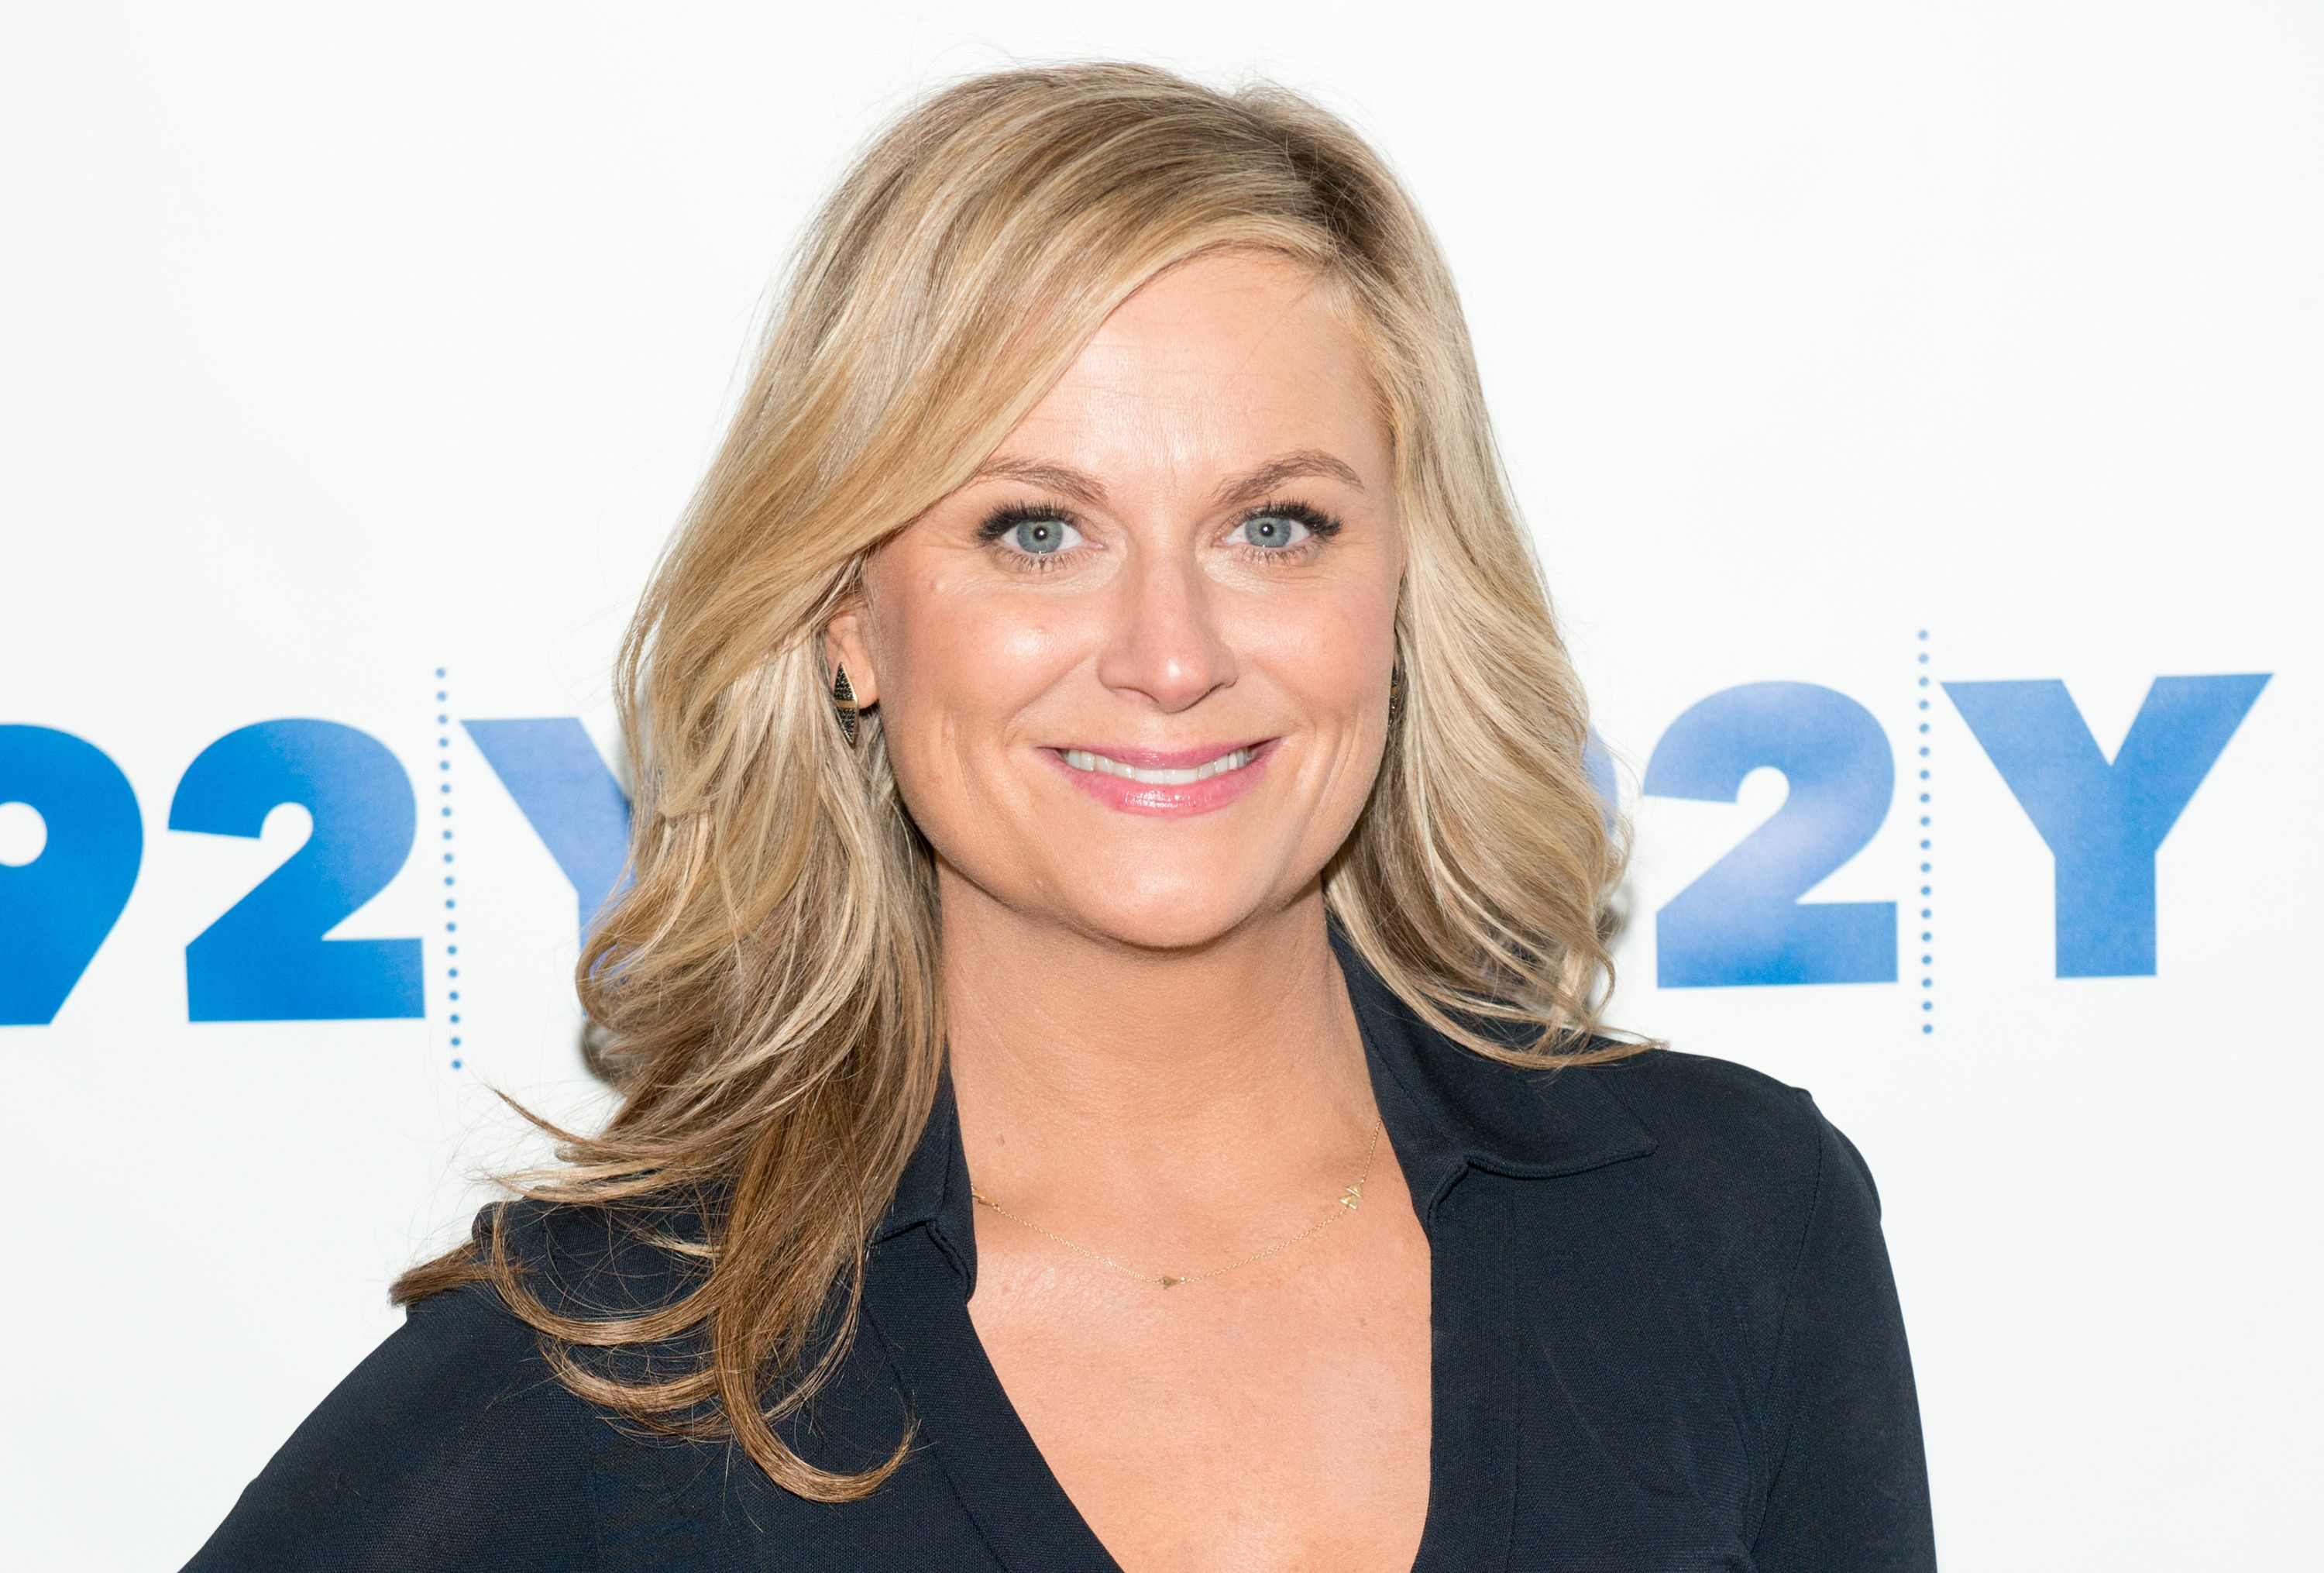 Amy Poehler Naked amy poehler 92y book event - amy poehler measures success in